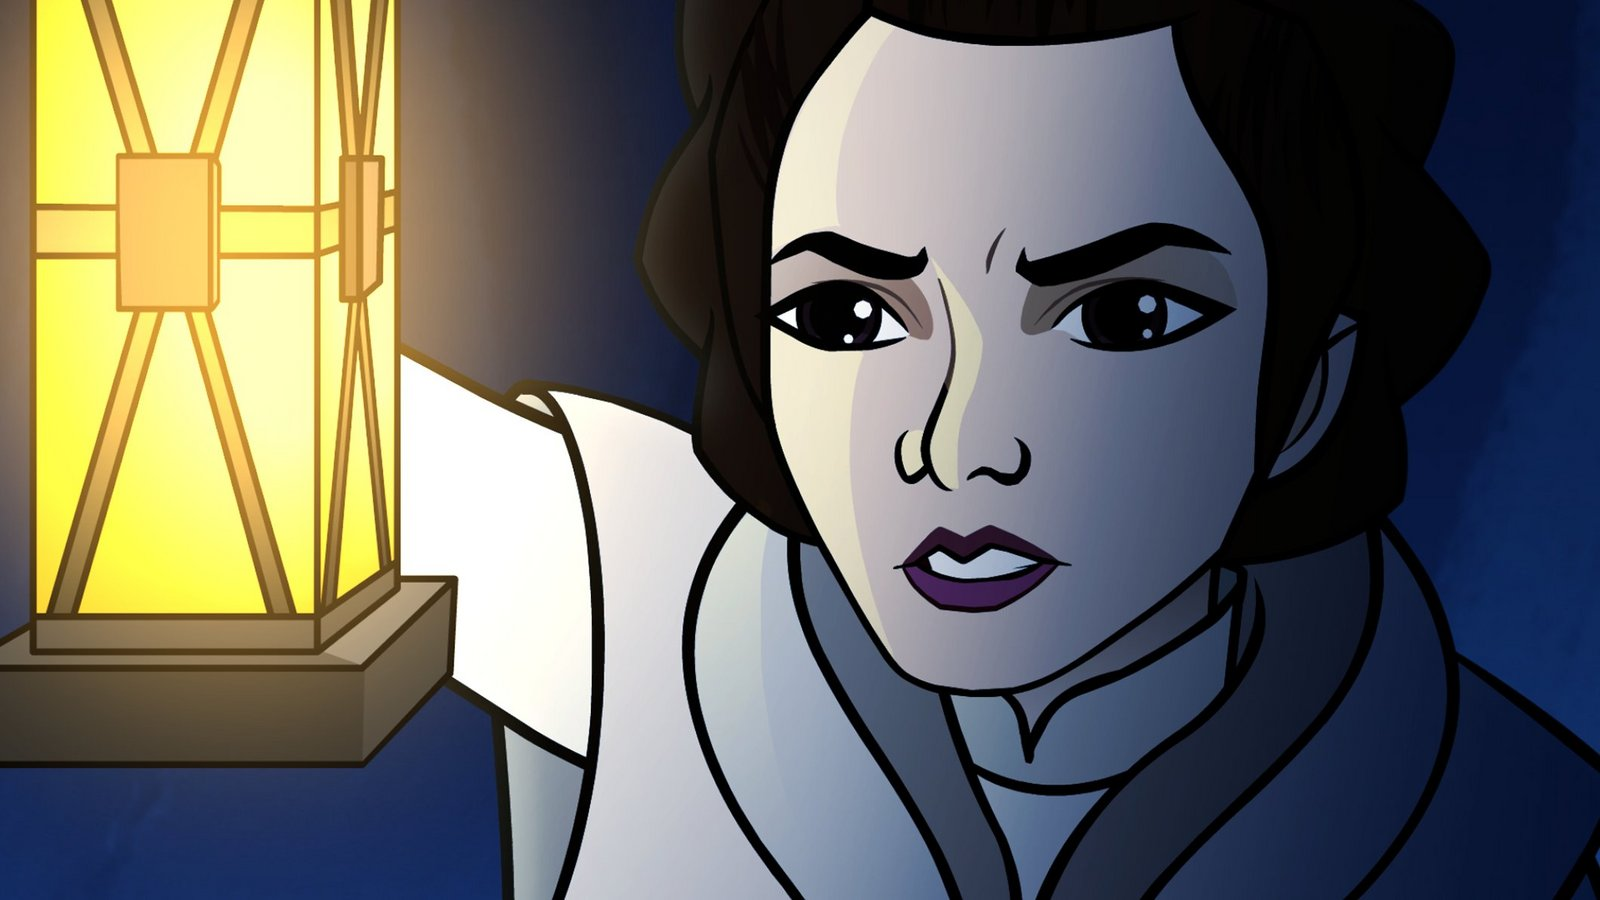 "Leia and Chewie encounter a wampa in Star Wars #ForcesOfDestiny: ""Beasts of Echo Base."" https://t.co/SxNgHQSJHq"